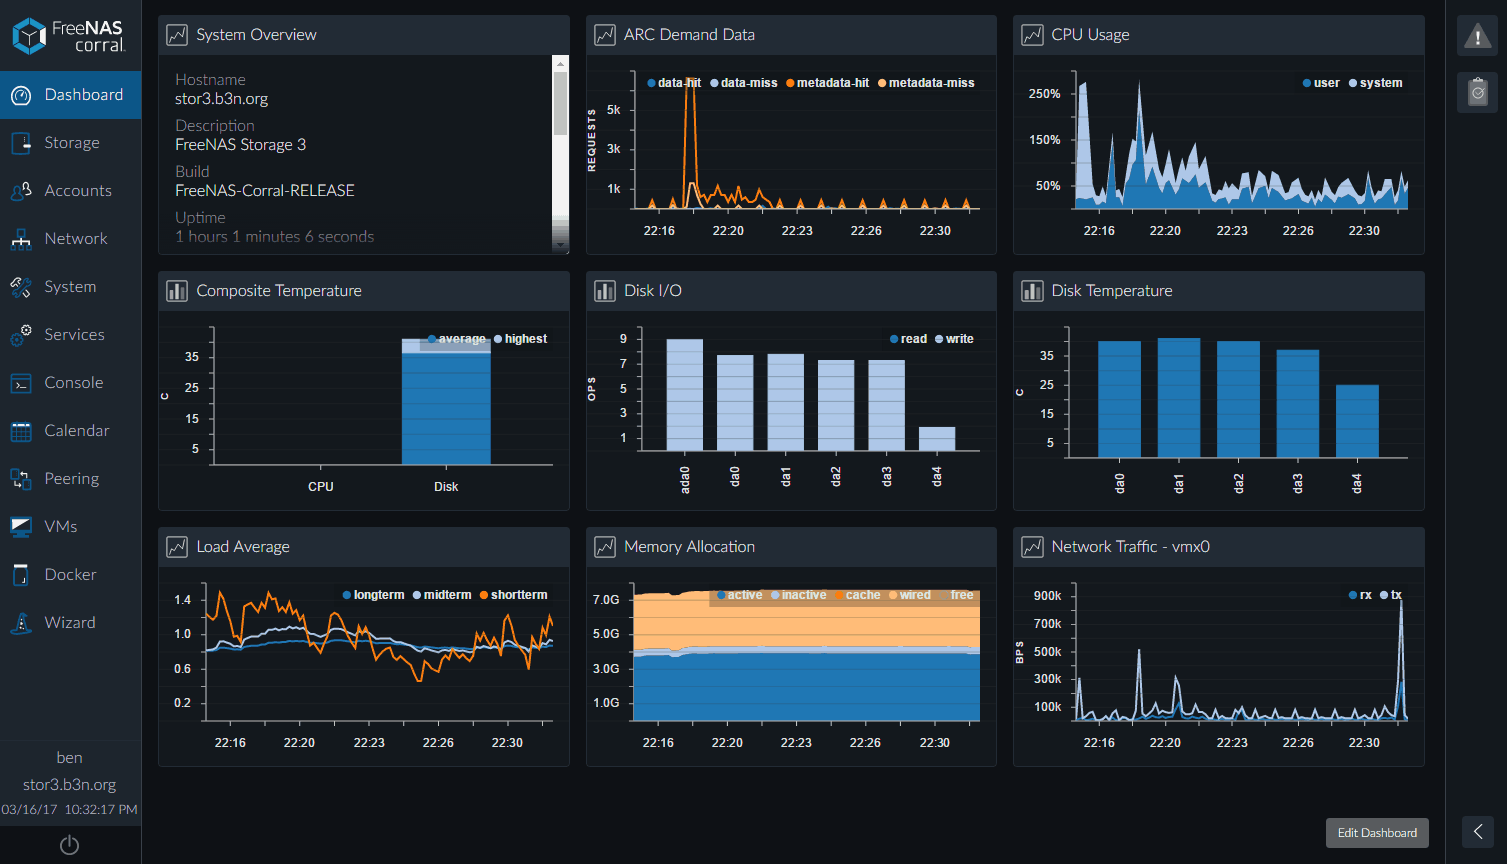 FreeNAS Corral Dashboard